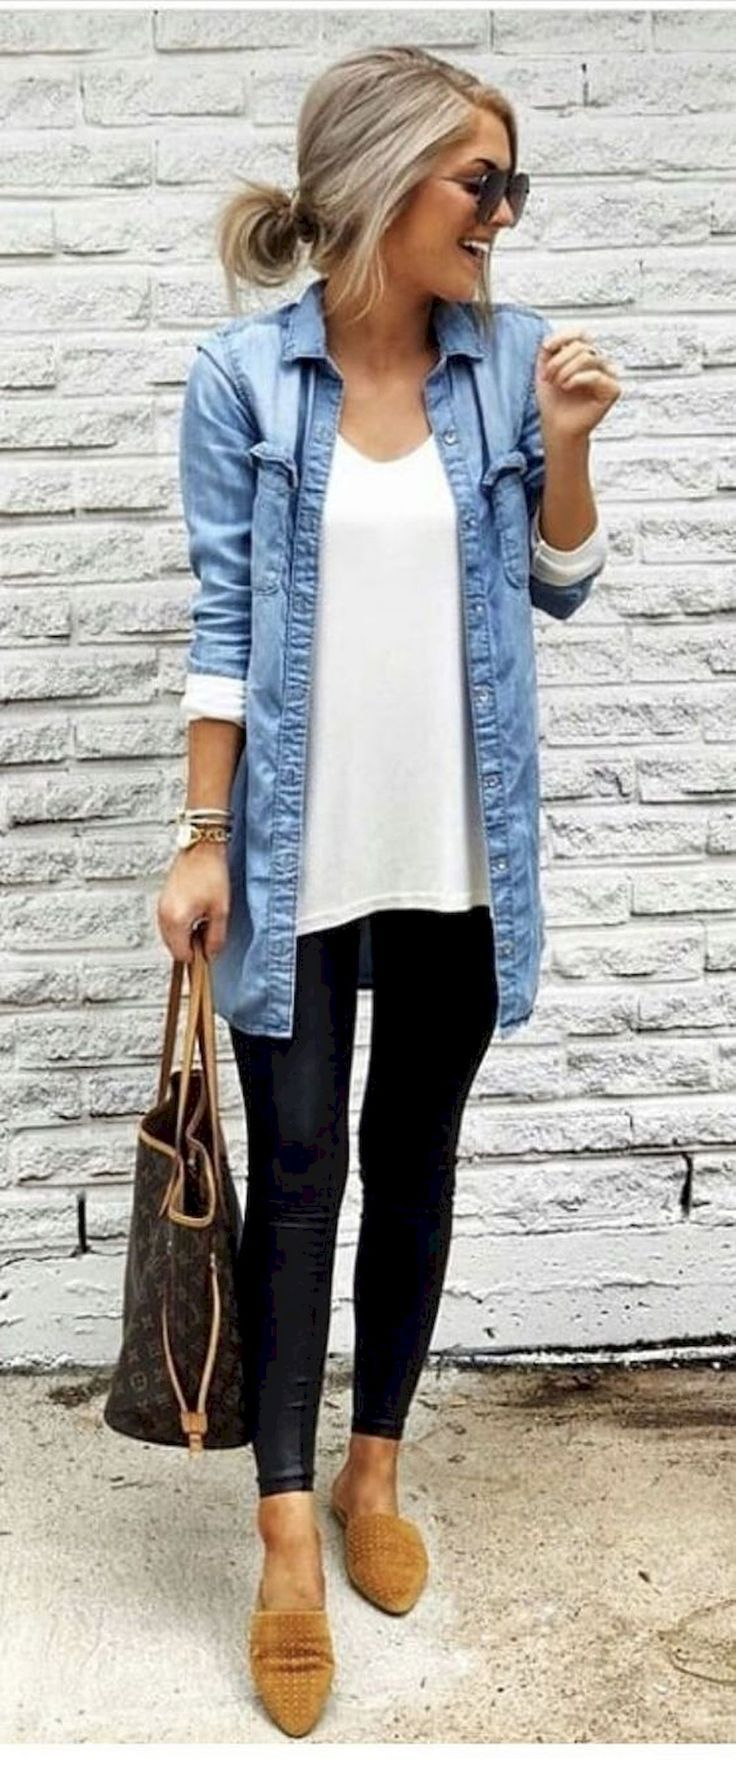 50 Best Spring Outfits Casual 2019 für Frauen, #Casual #Women #outfits #spri ... https://vict...